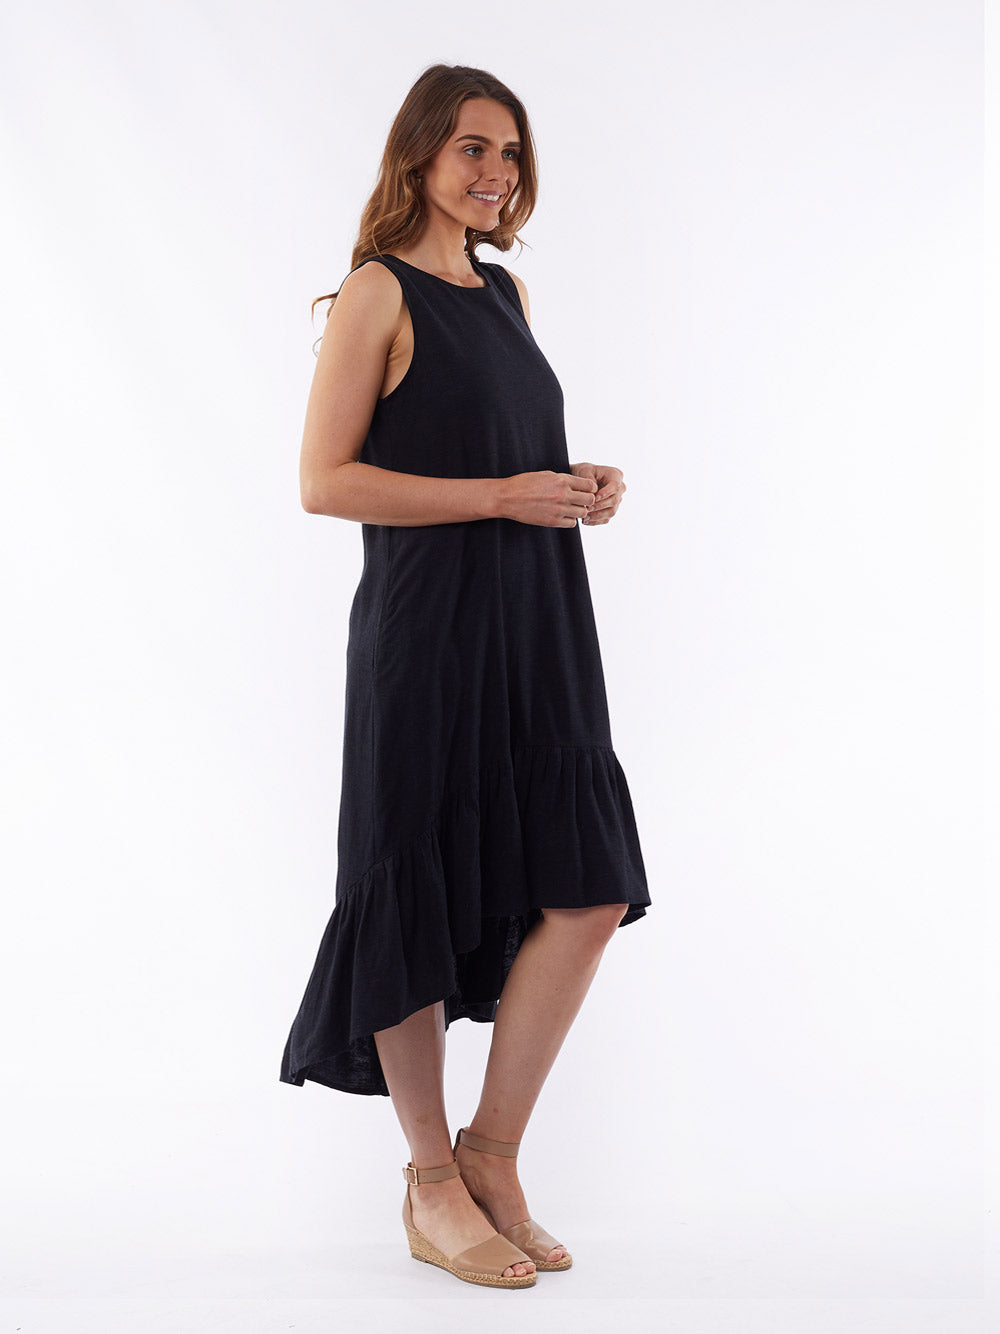 ELM LIFESTYLE Jasmine Dress - Black